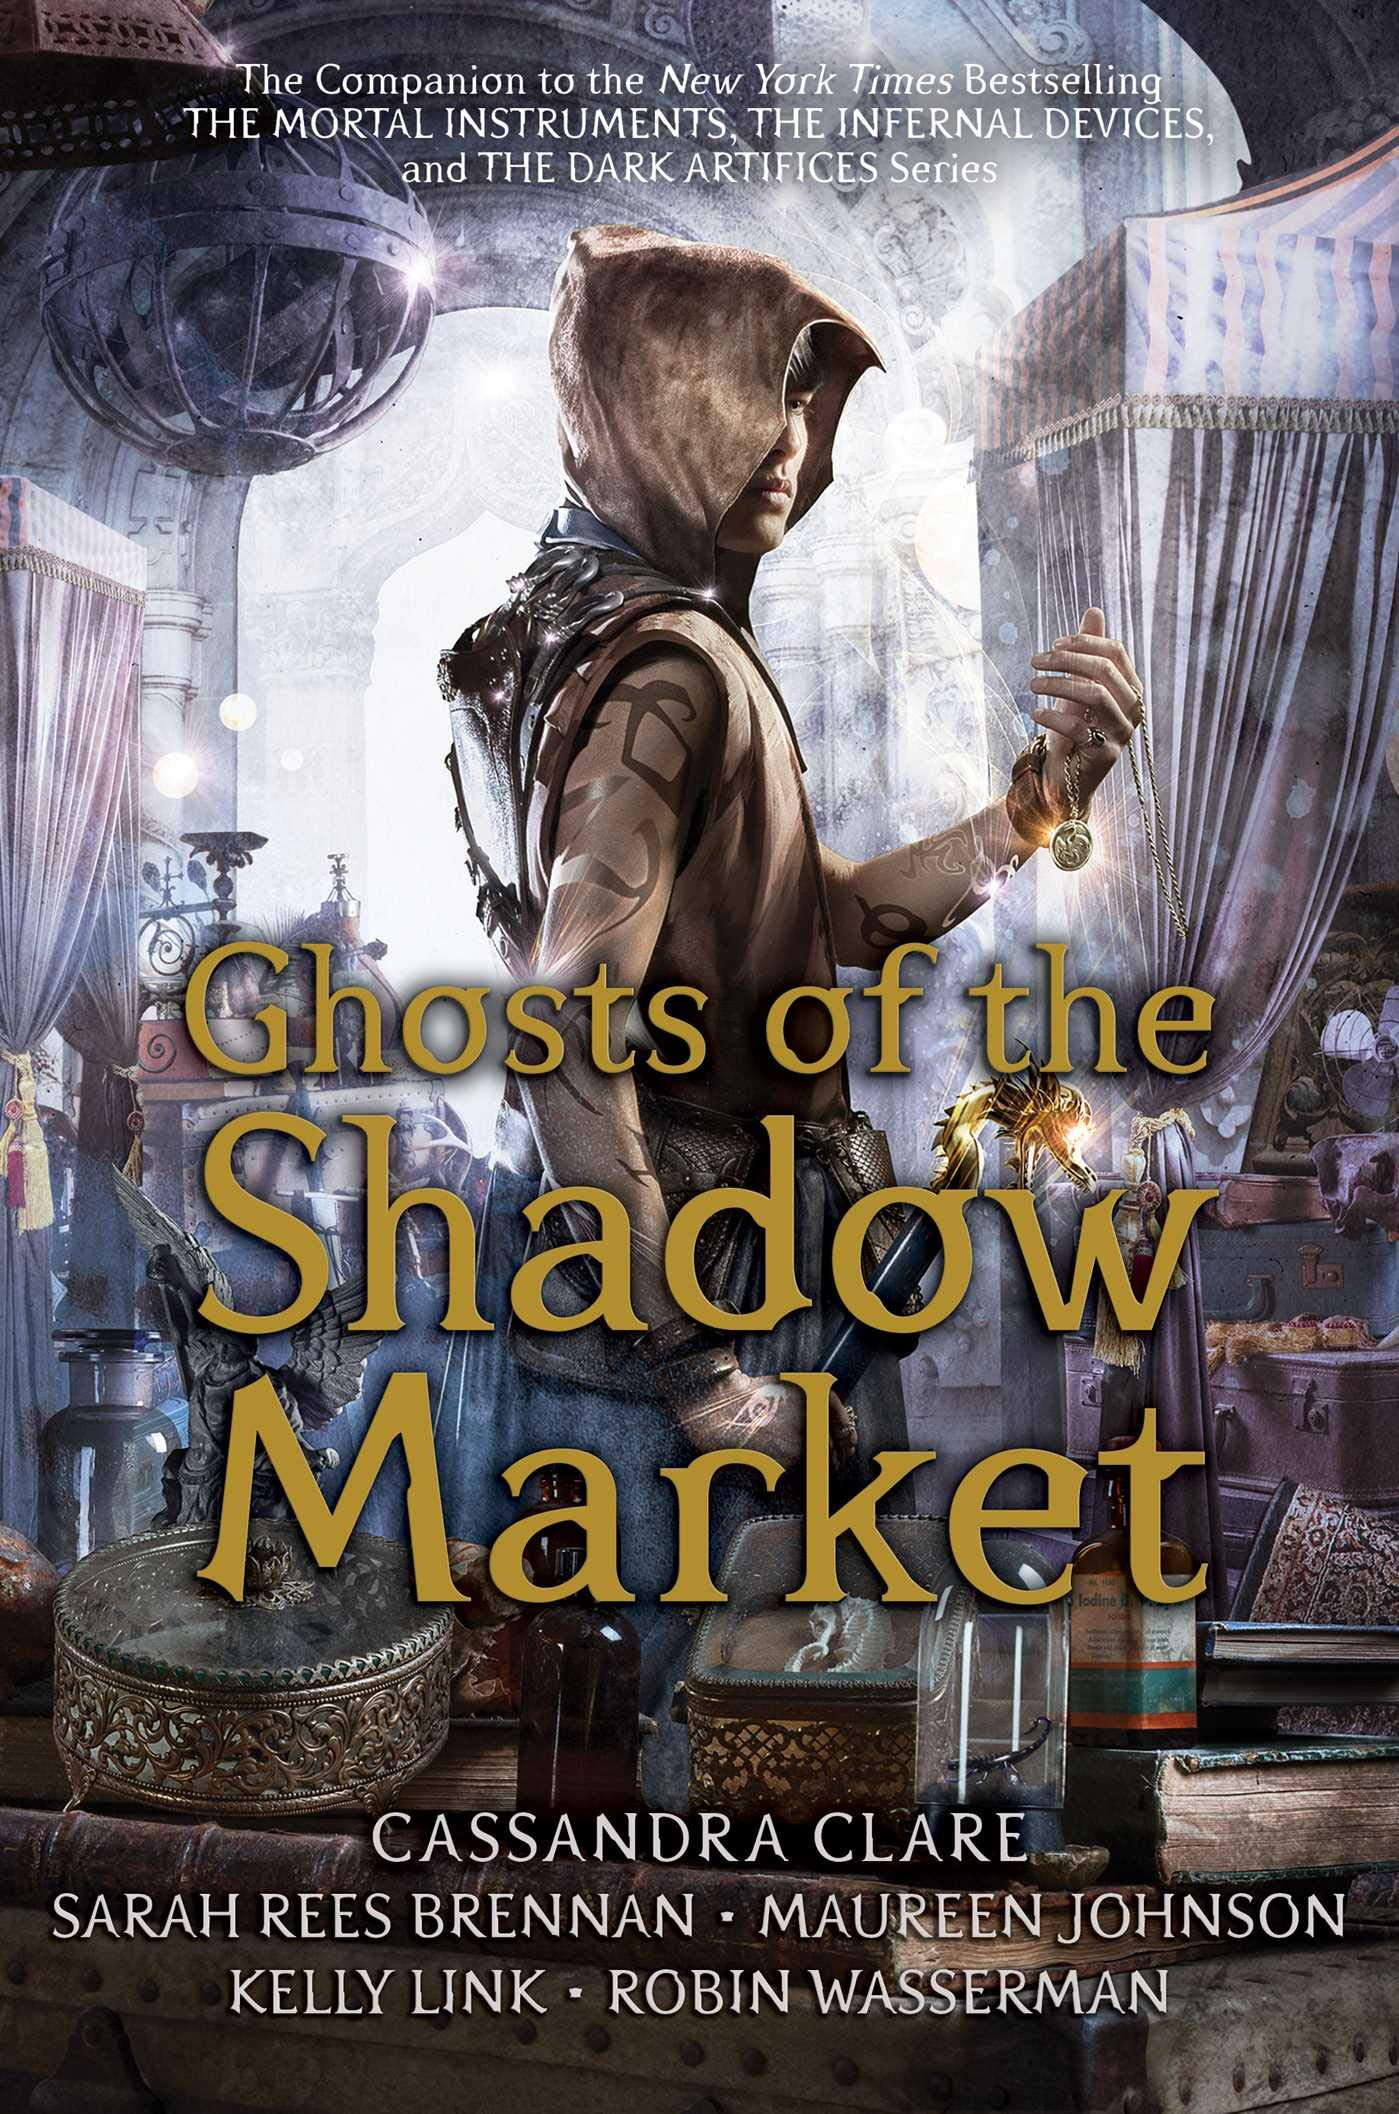 Ghosts of the Shadow Market: Amazon.ca: Clare, Cassandra, Rees Brennan,  Sarah, Johnson, Maureen, Link, Kelly, Wasserman, Robin: Books